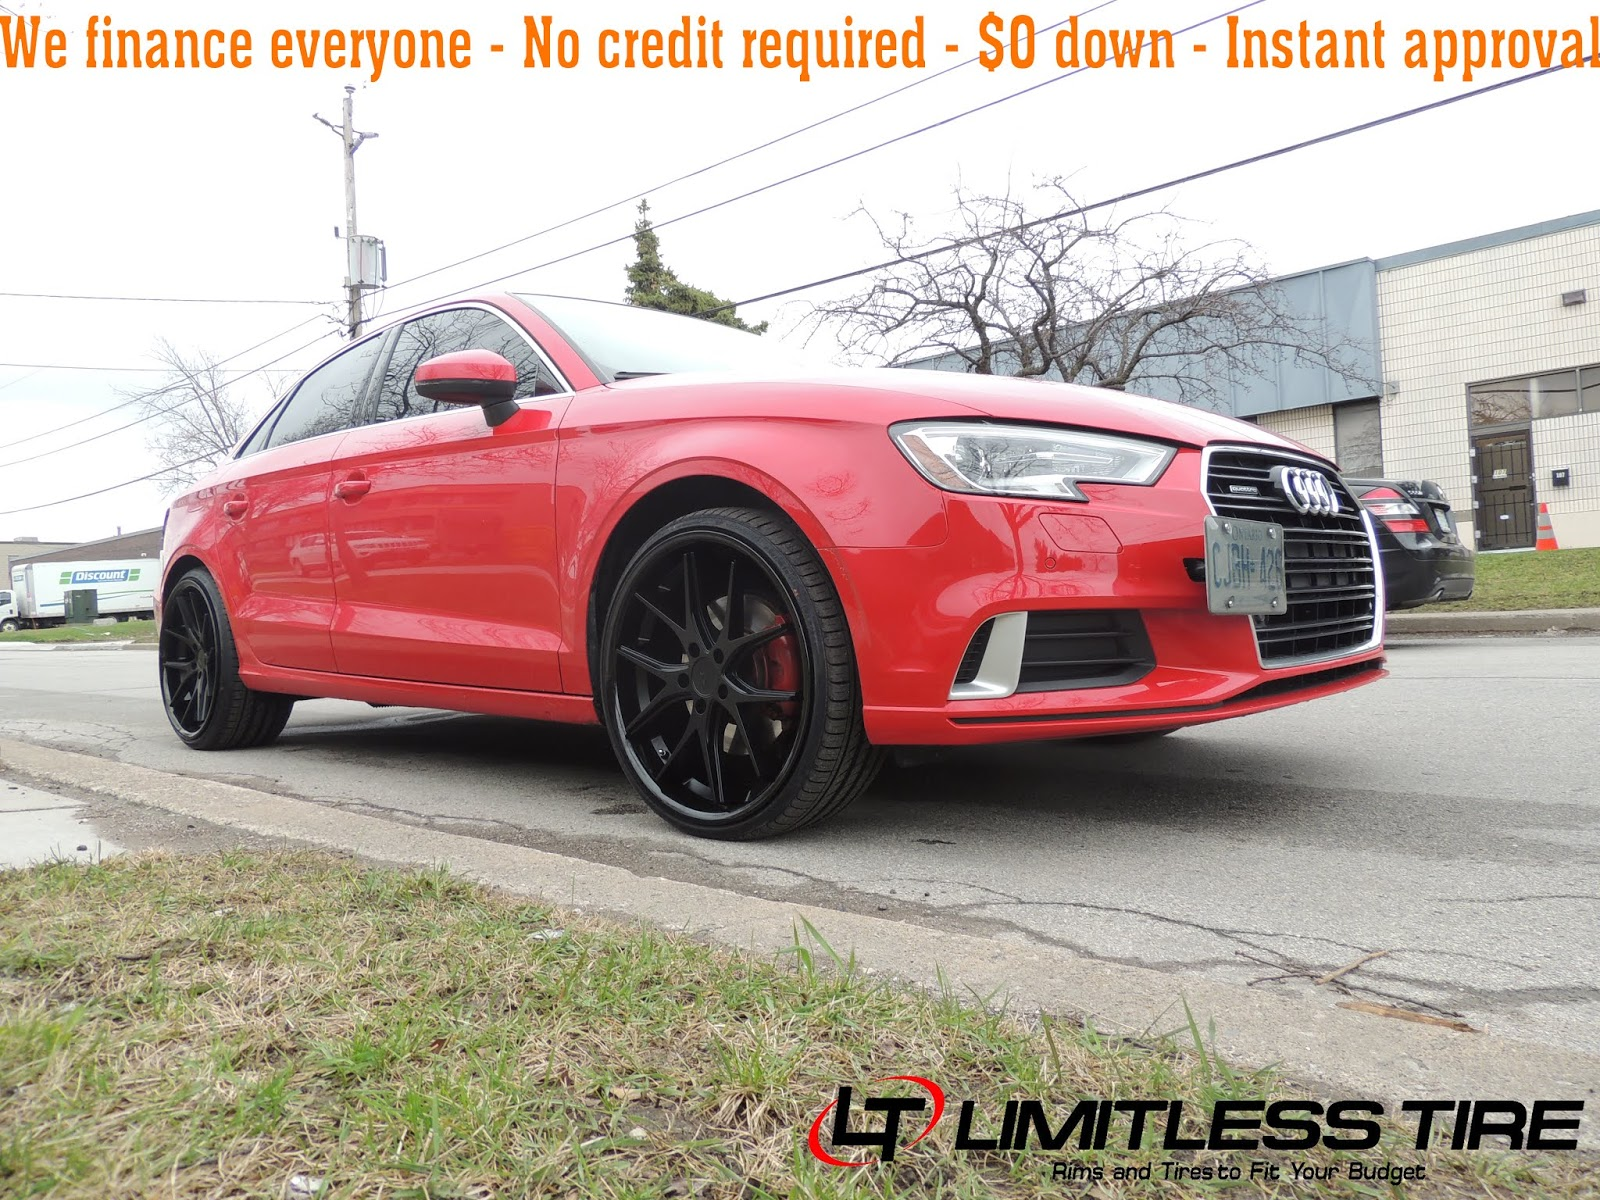 Snow Tires Winter Tires Goodyear Tires >> Limitless Tire Best Tire Shop In Toronto Tire Shop